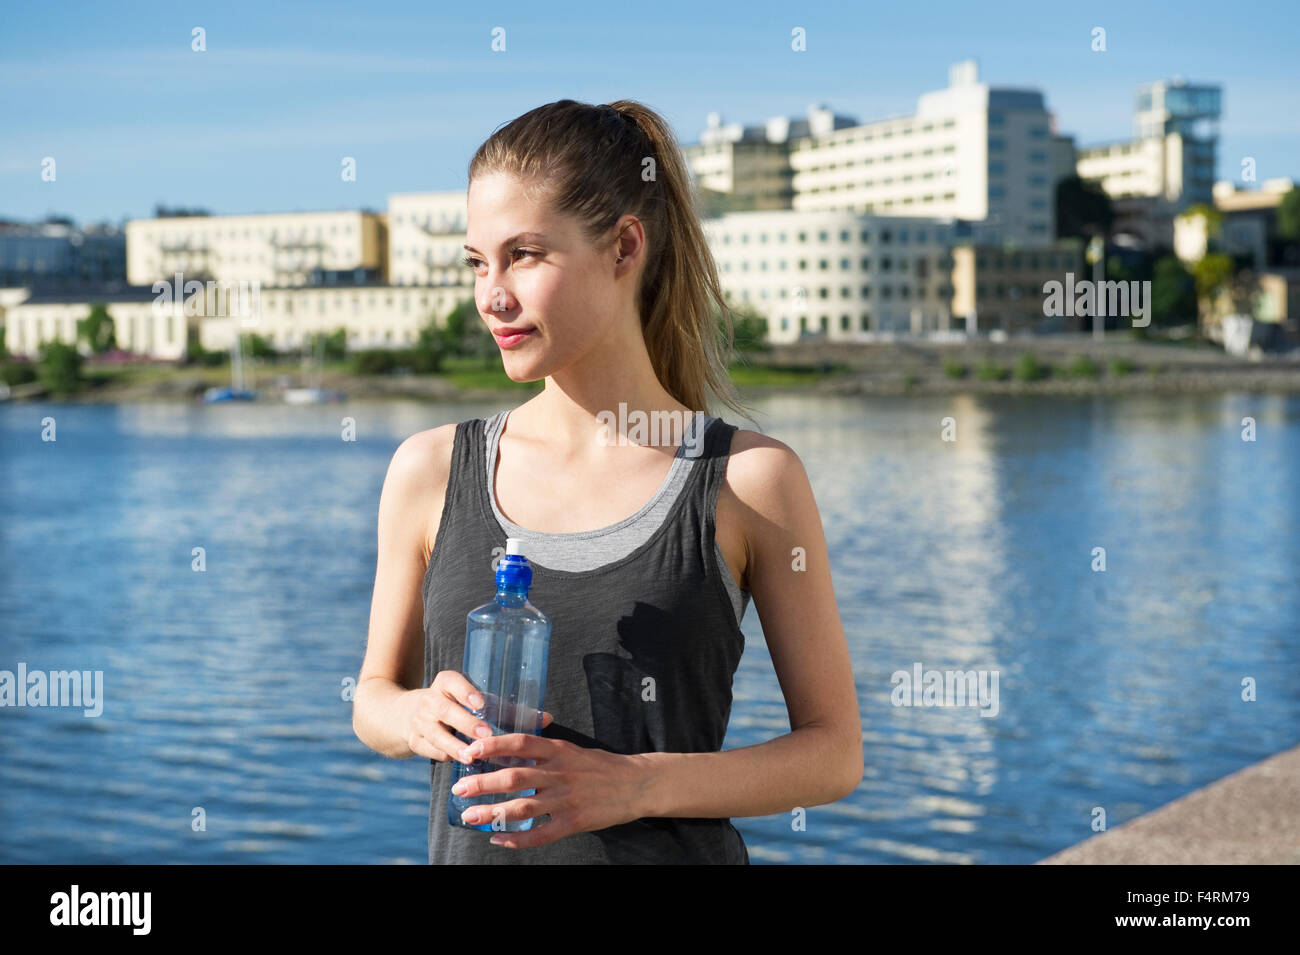 Young woman with water bottle, Hammarby Sjostad, Stockholm, Sweden in background - Stock Image